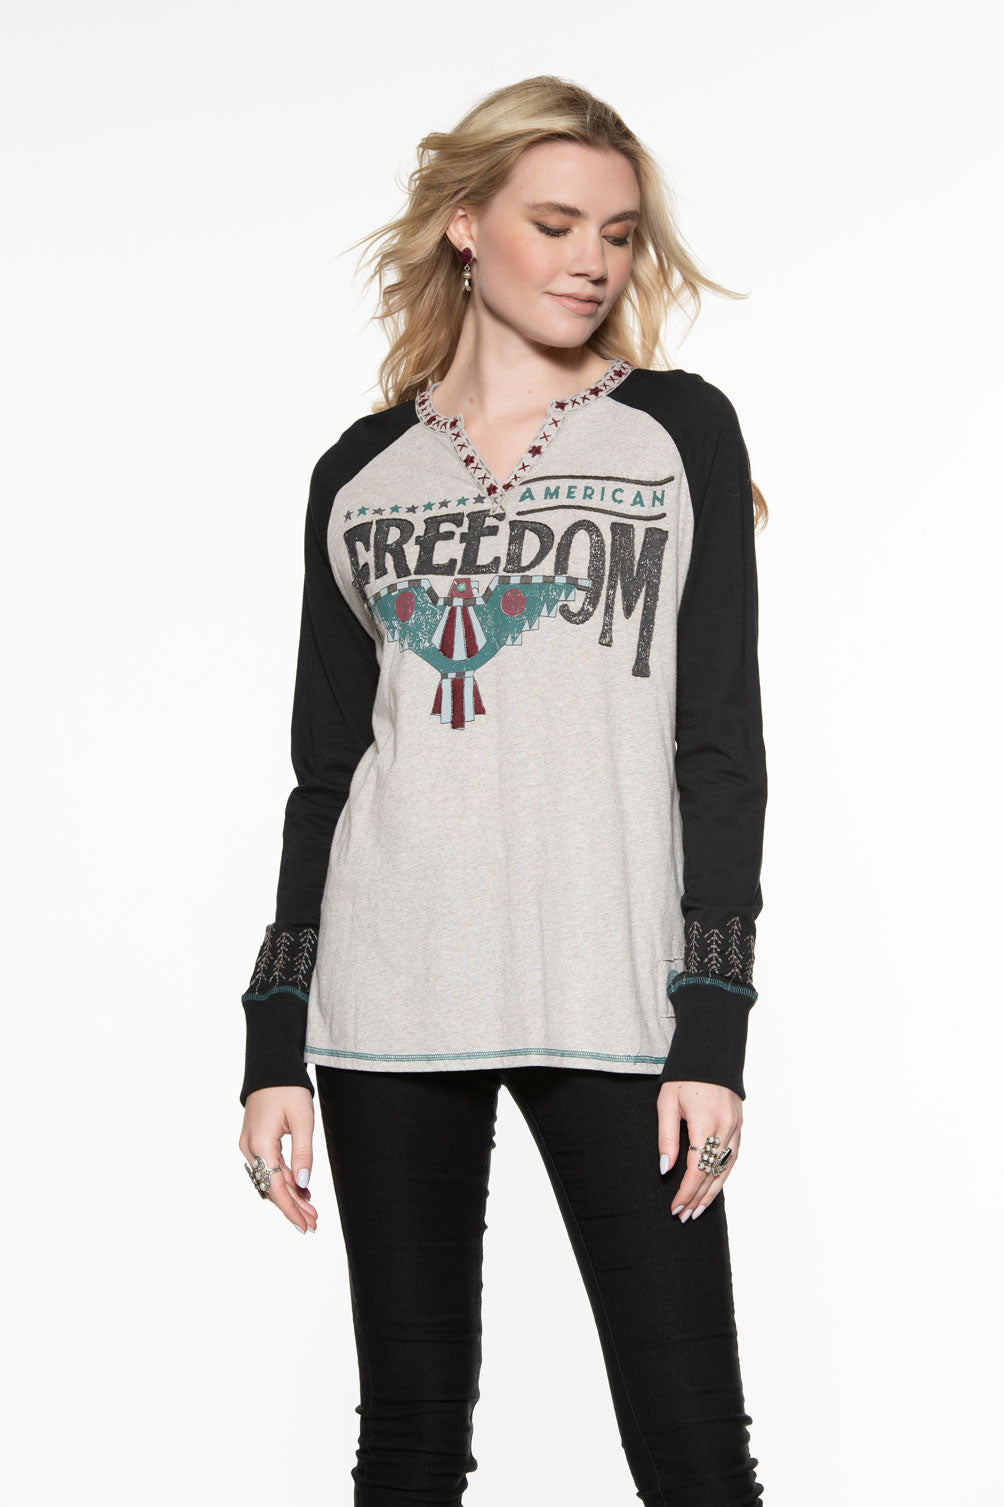 American Freedom Top